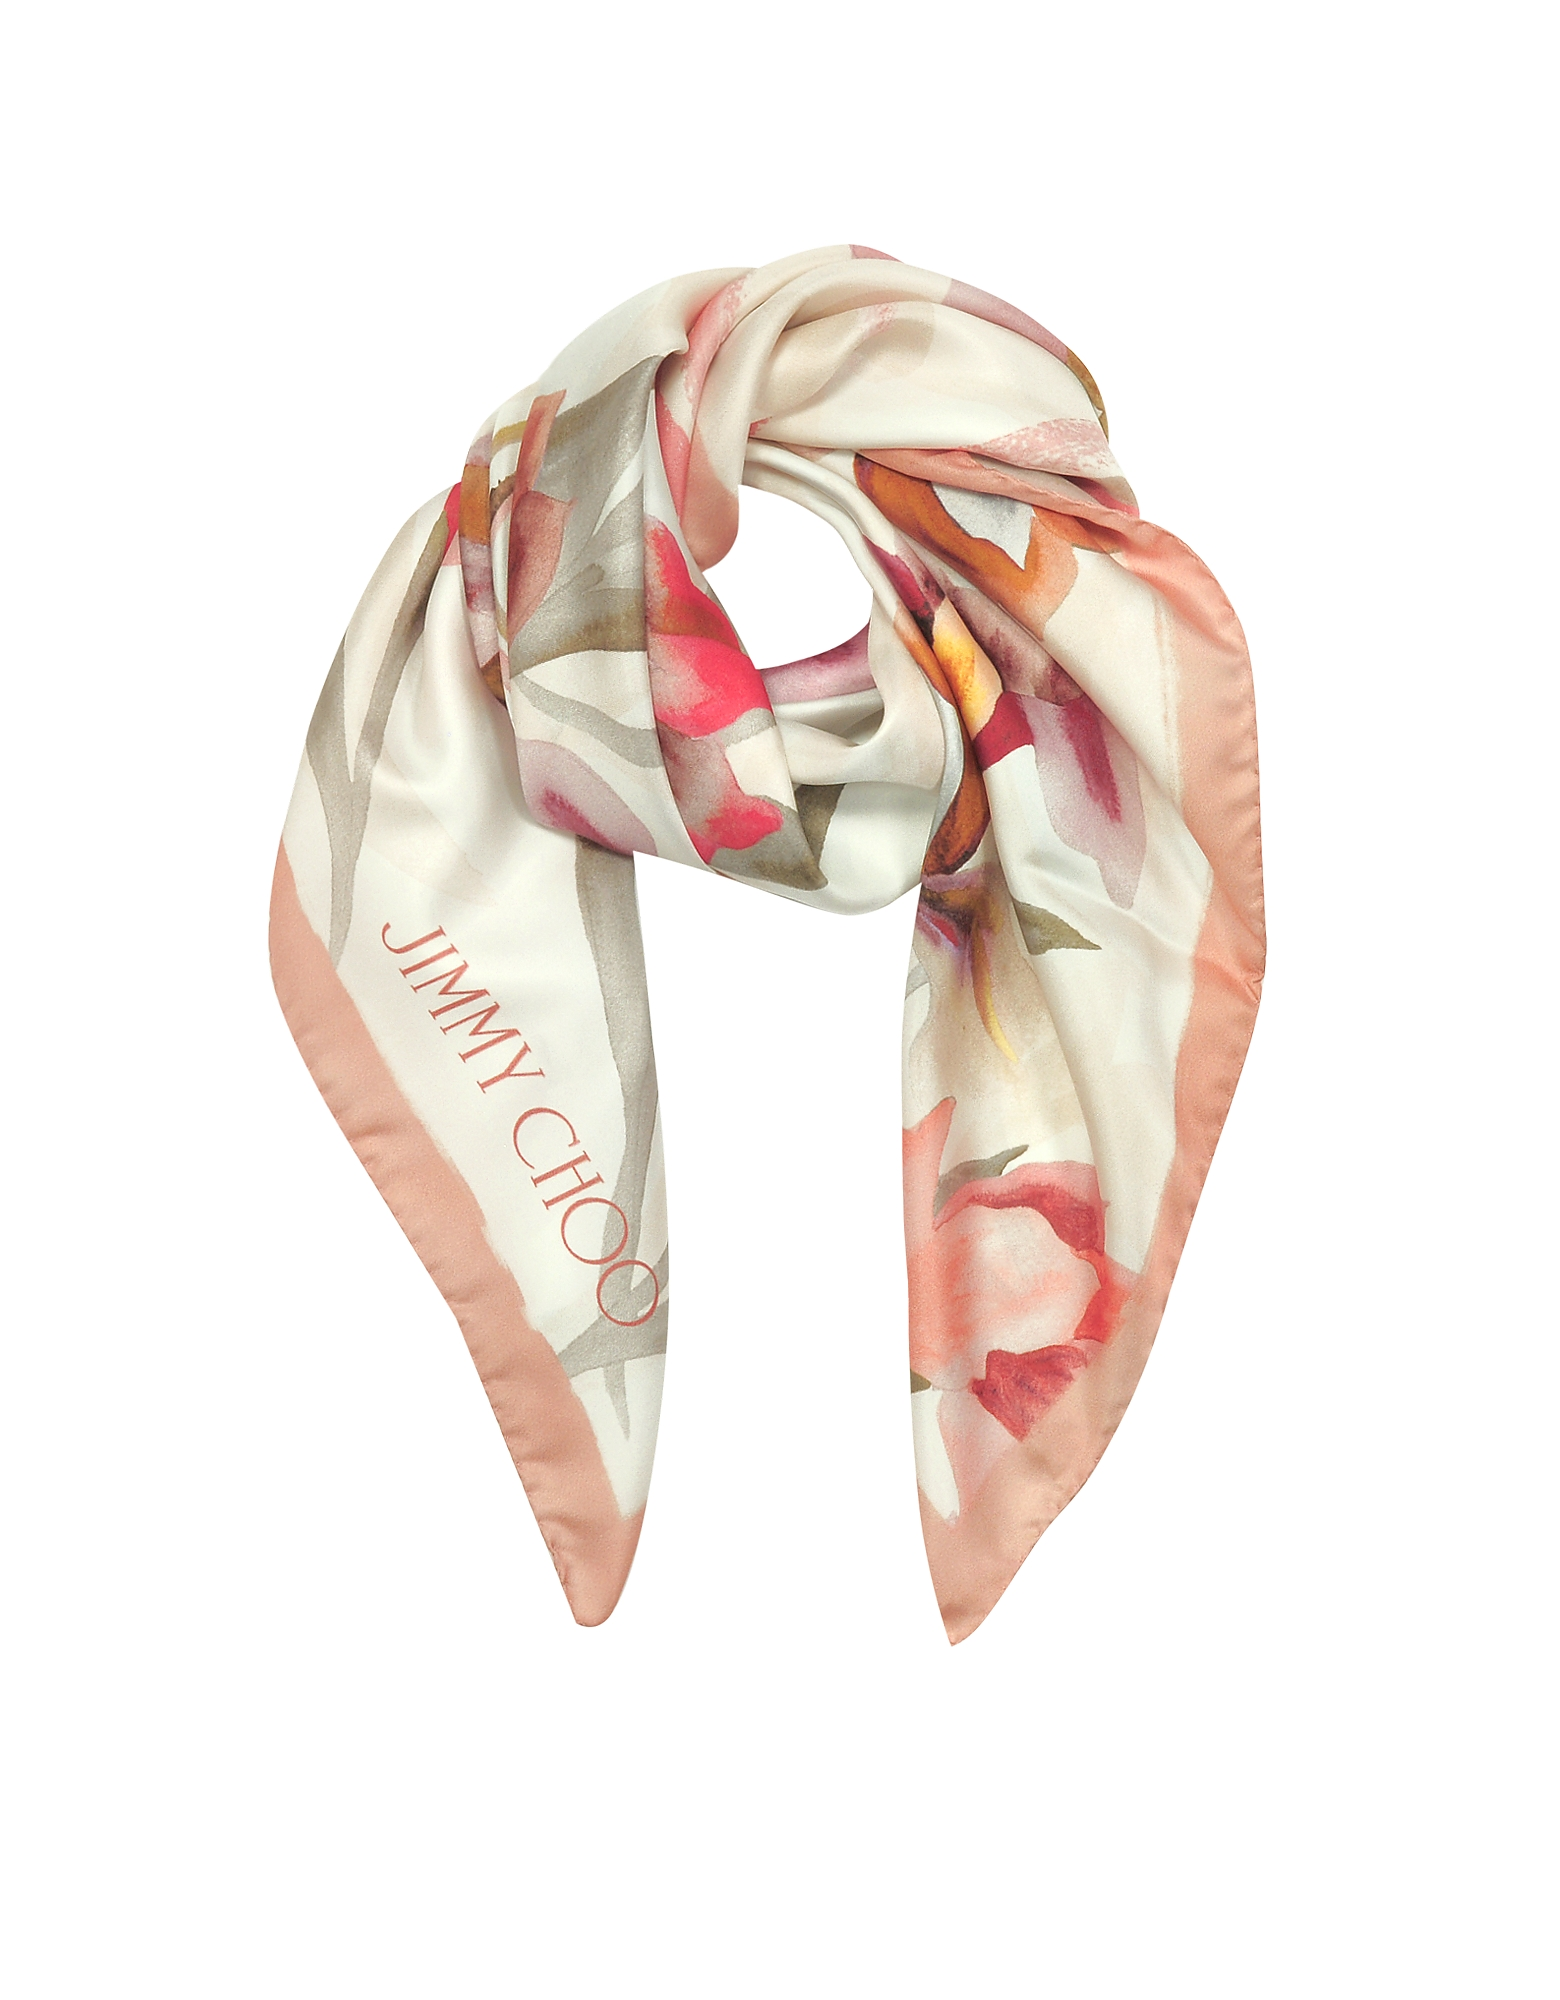 Ari Shoe and Floral Printed Silk Square Scarf